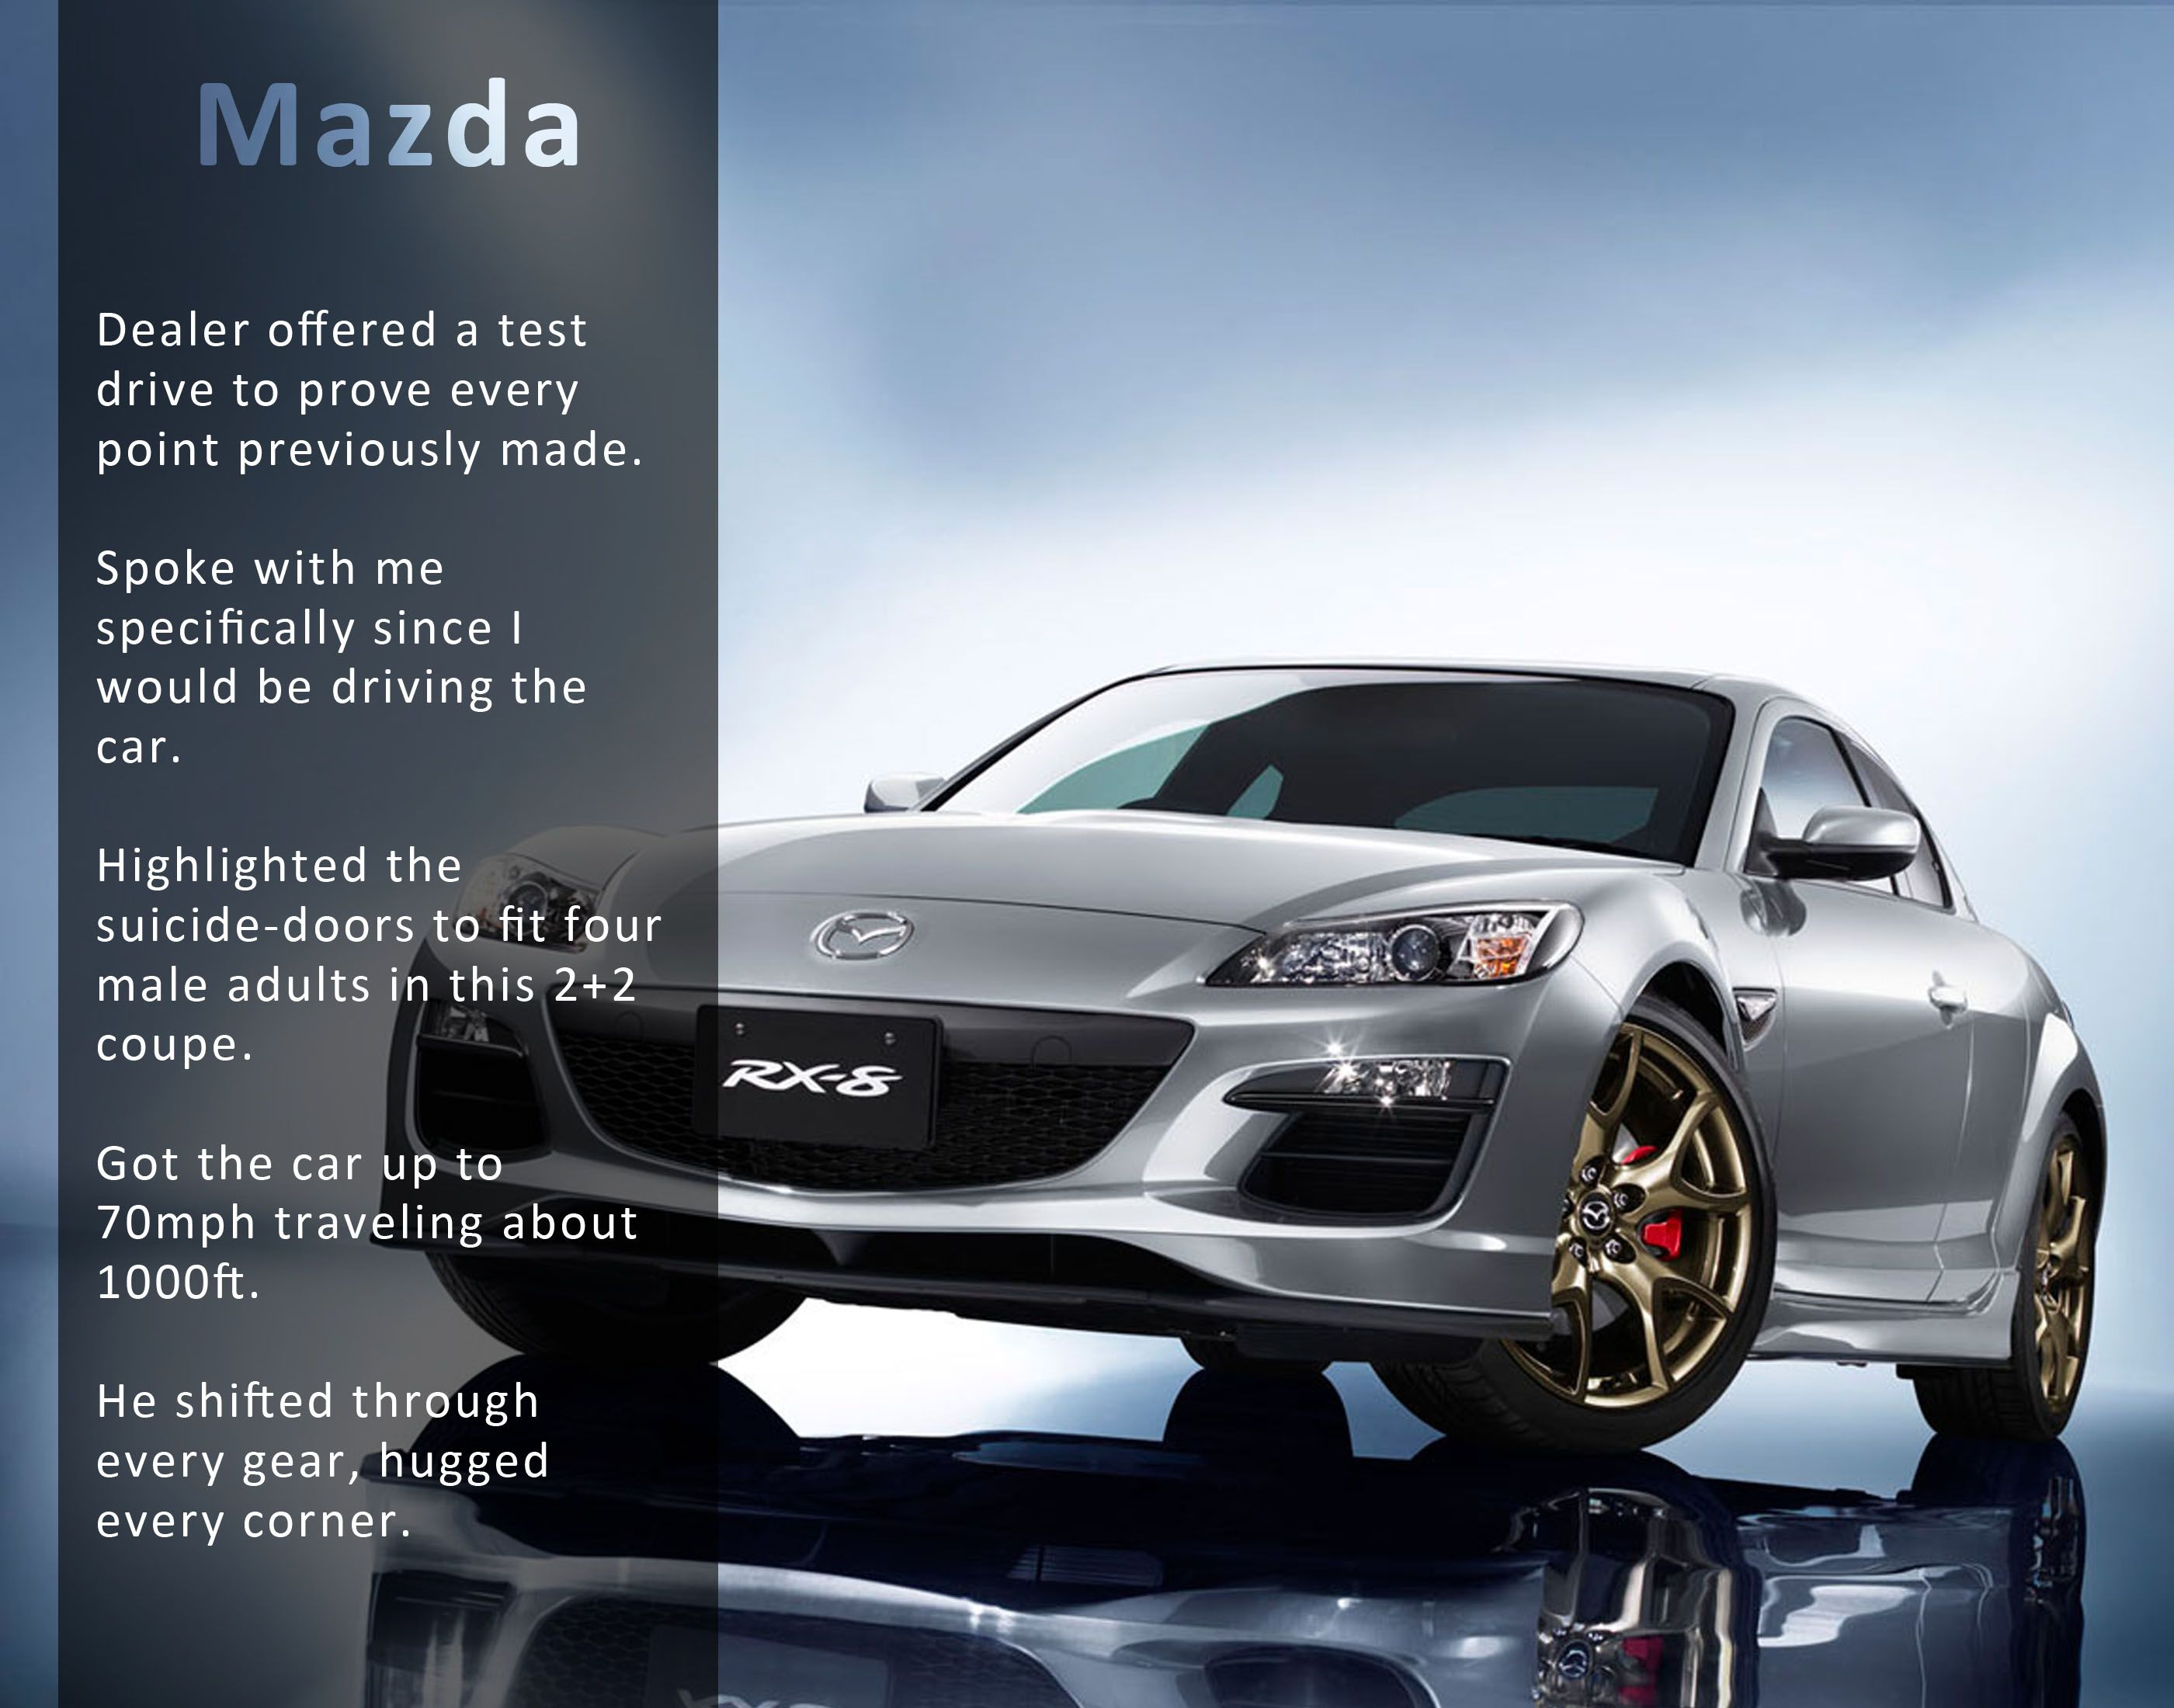 dealers mo welcome mazda in me city near dealer new missouri to martin